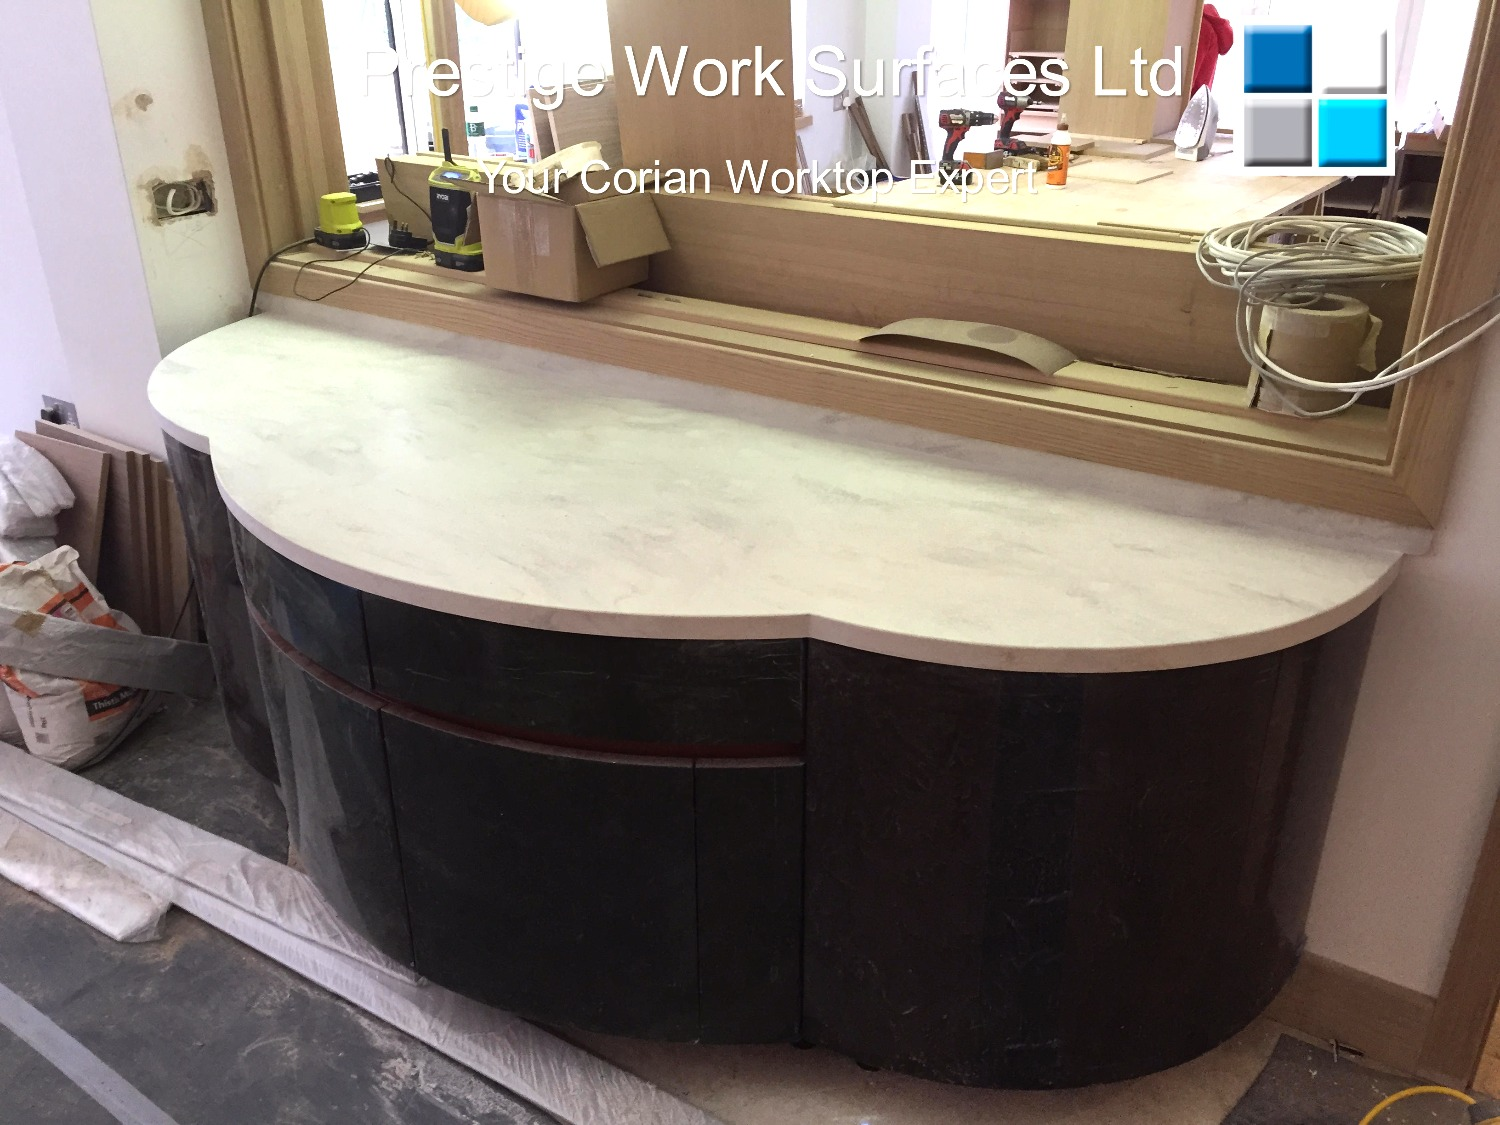 Your Corian Worktop Expert. Prestige Work Surfaces Ltd31_edited